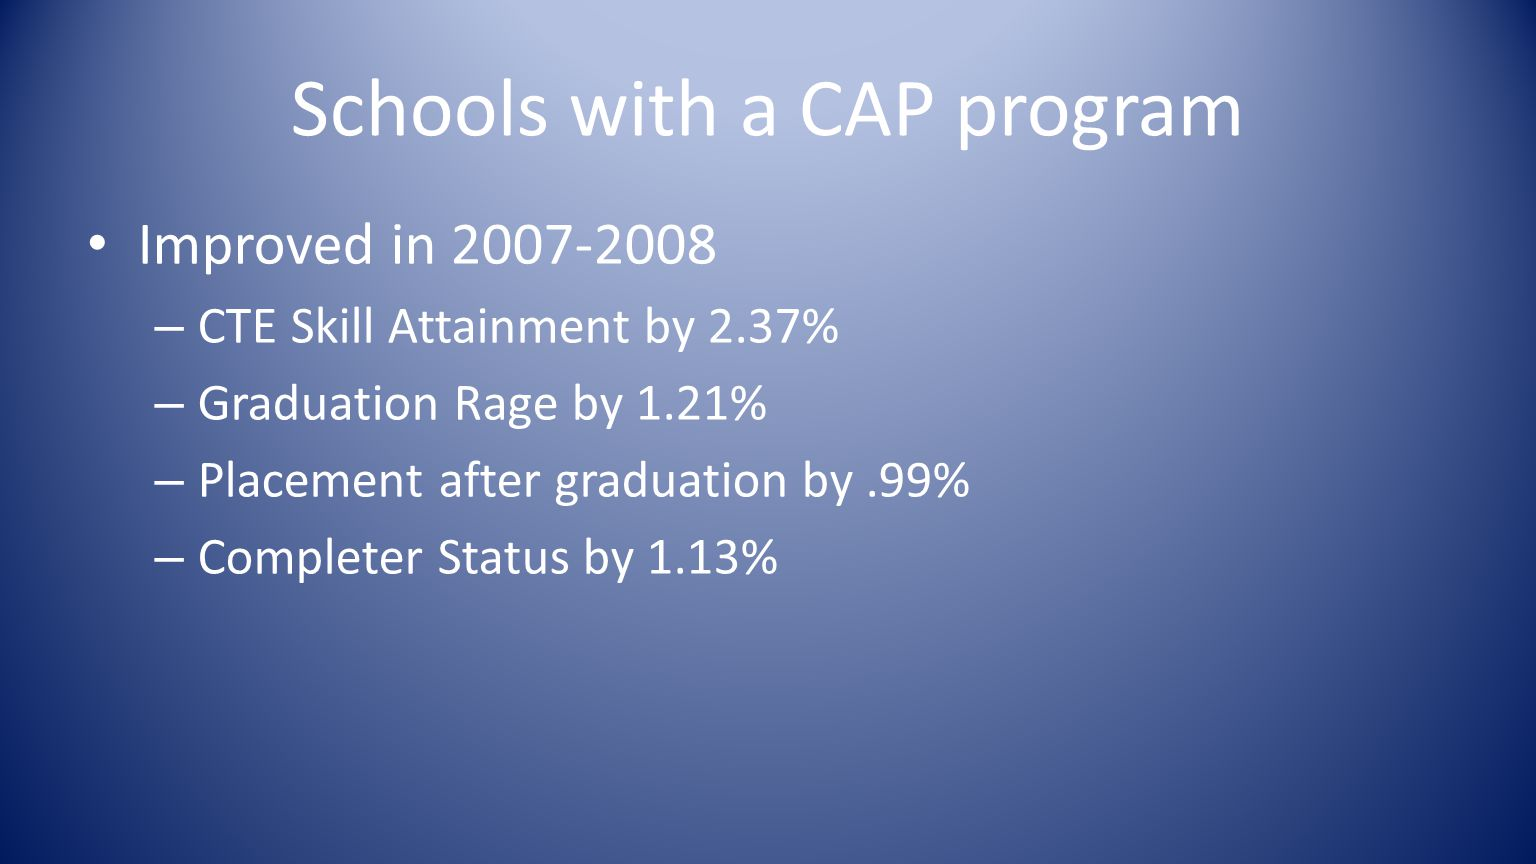 Schools with a CAP program Improved in 2007-2008 – CTE Skill Attainment by 2.37% – Graduation Rage by 1.21% – Placement after graduation by.99% – Completer Status by 1.13%